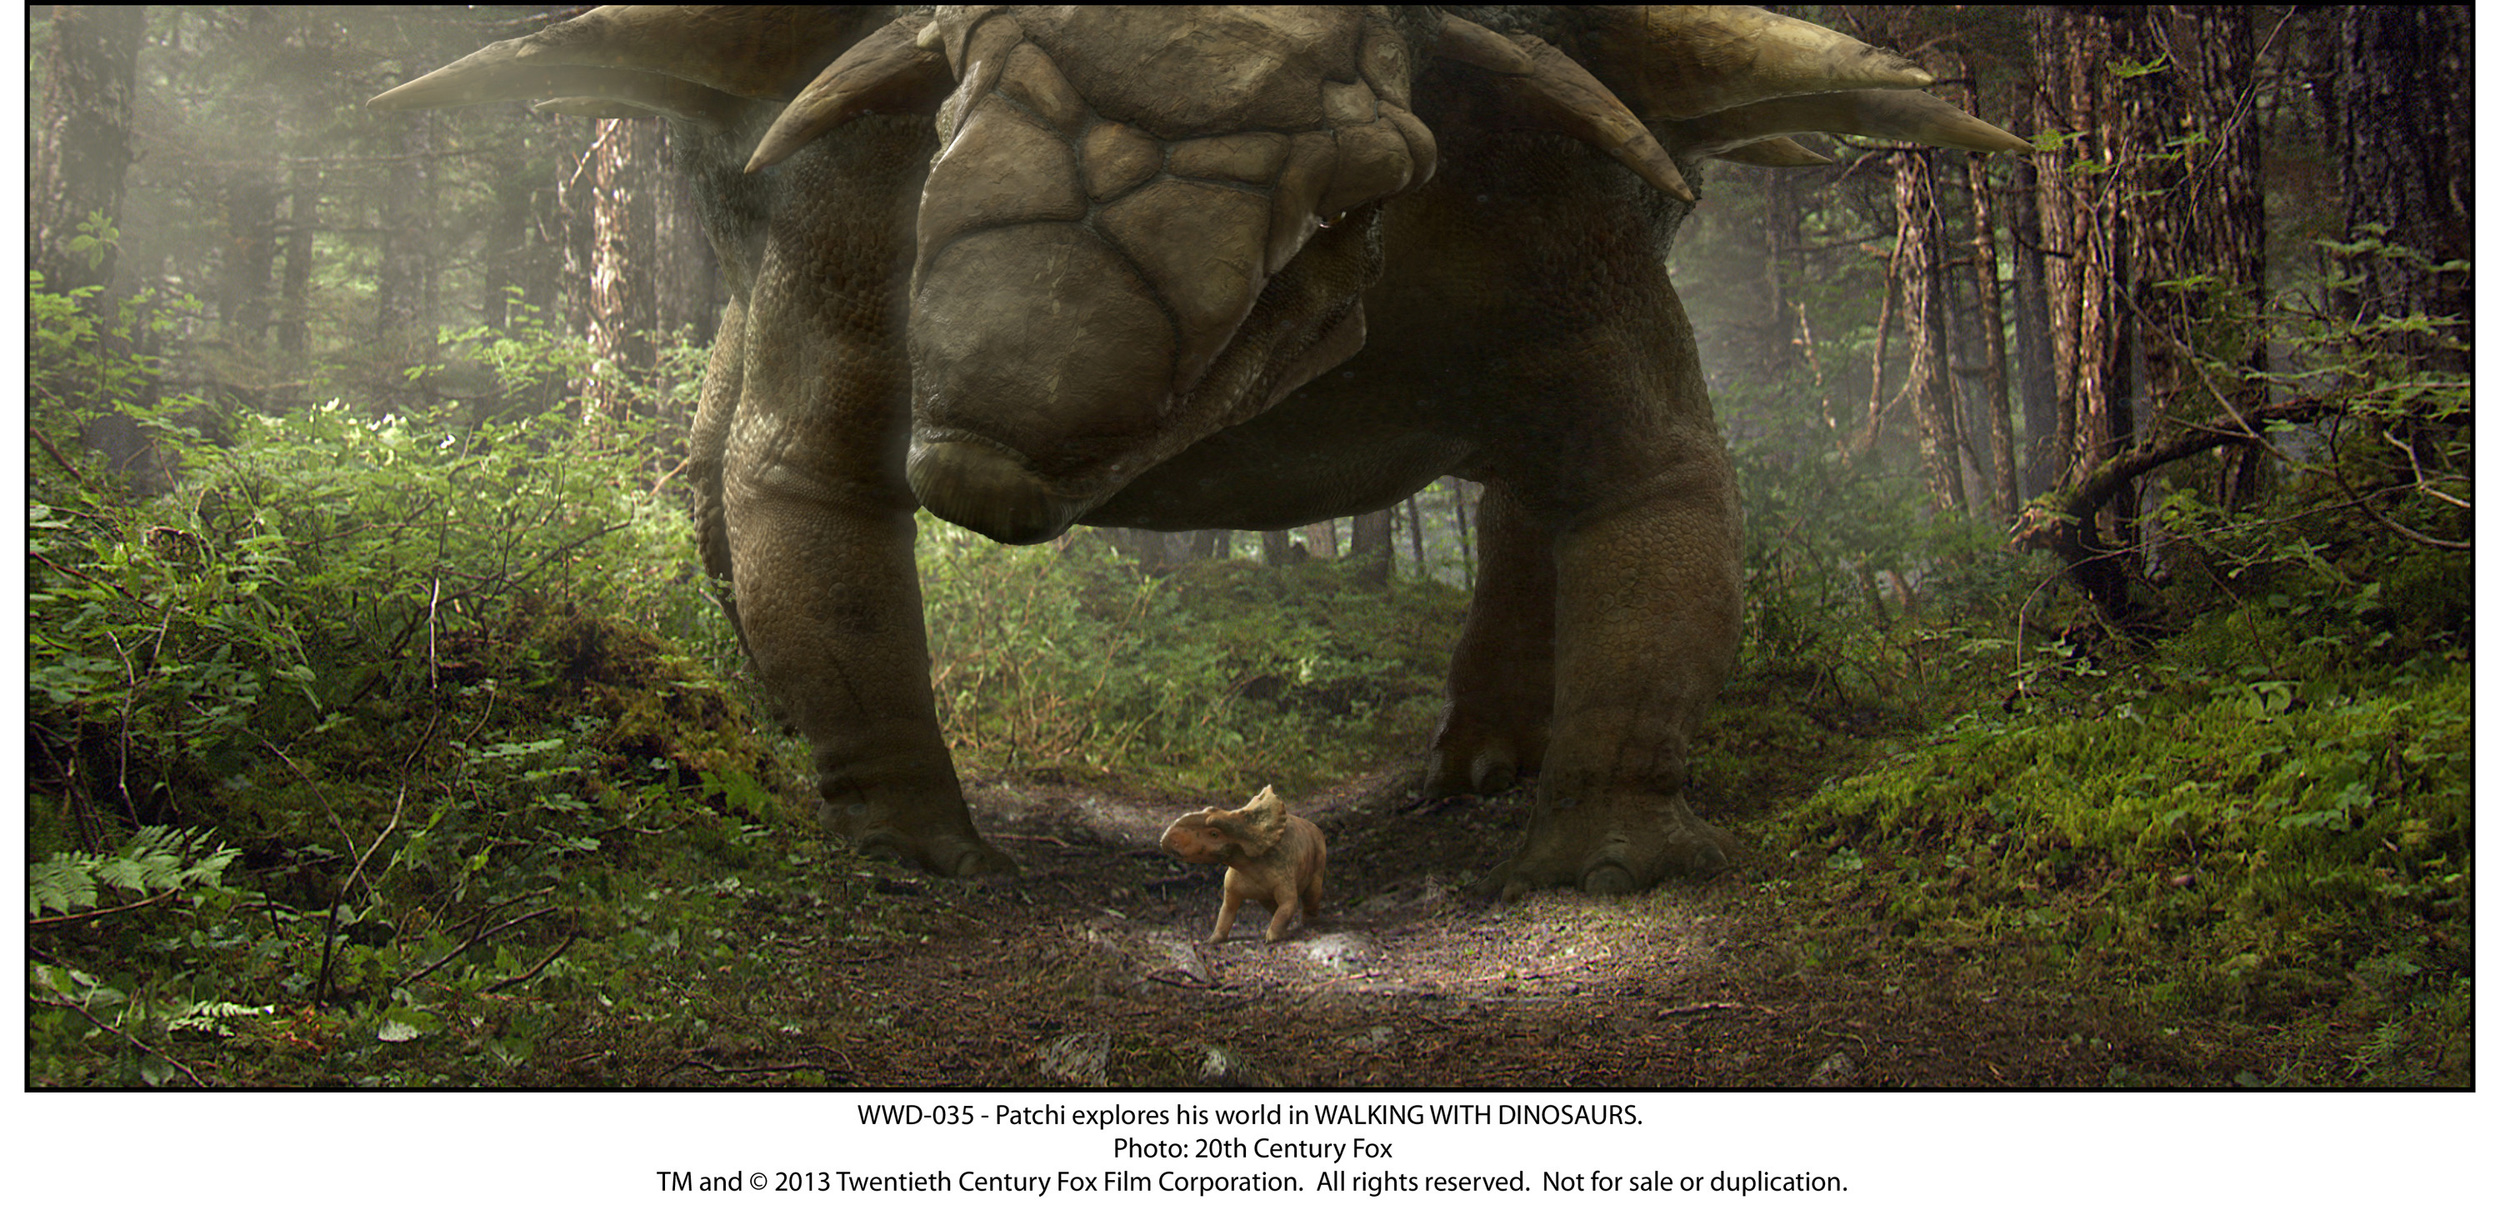 WWD-035 - Patchi explores his world in WALKING WITH DINOSAURS.